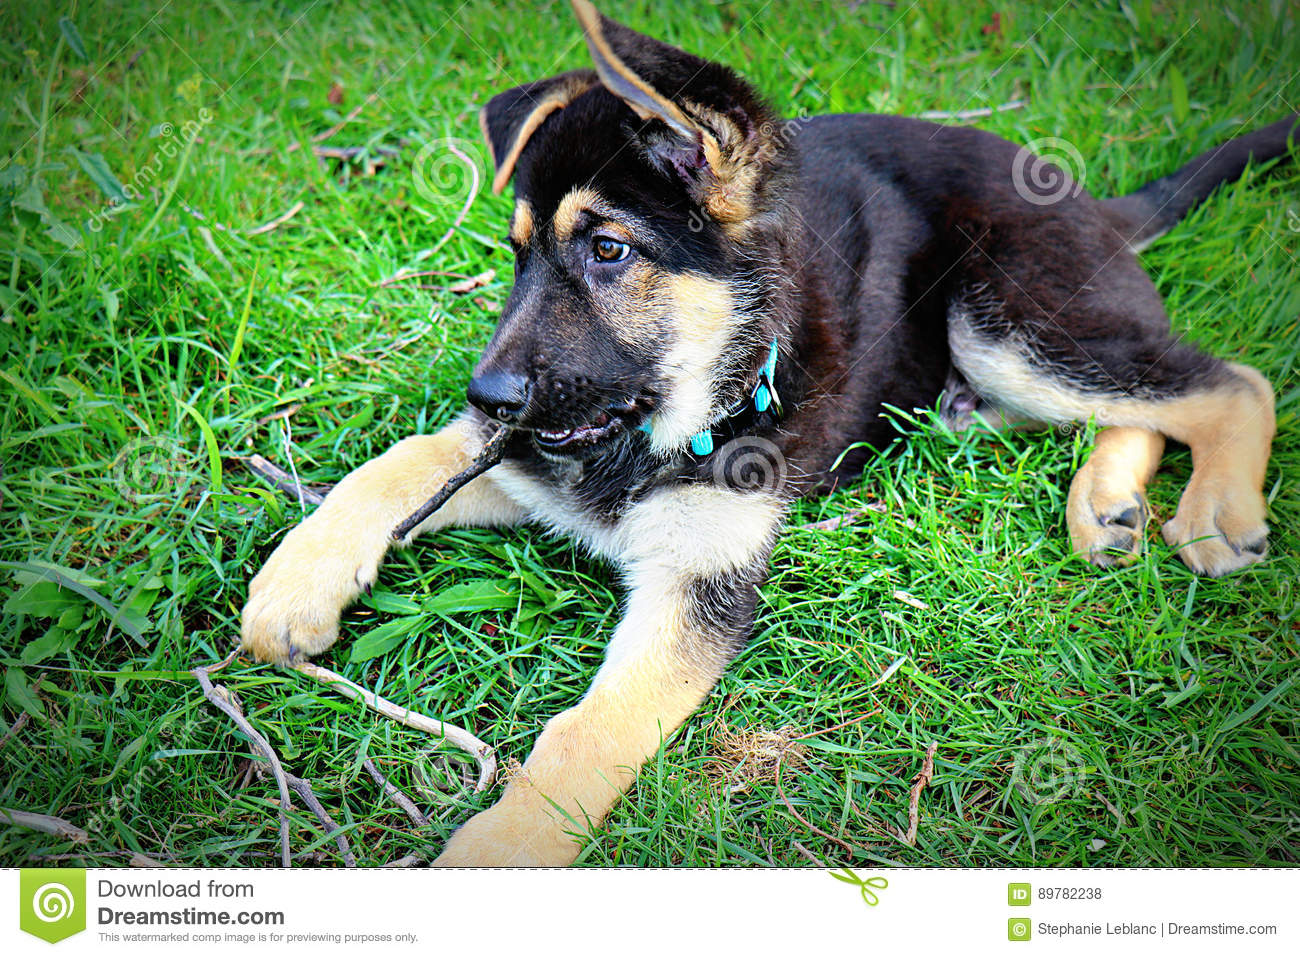 Brown And Black German Shepherd Puppy Chewing On Stick Stock Photo Image Of Grass Shepherd 89782238